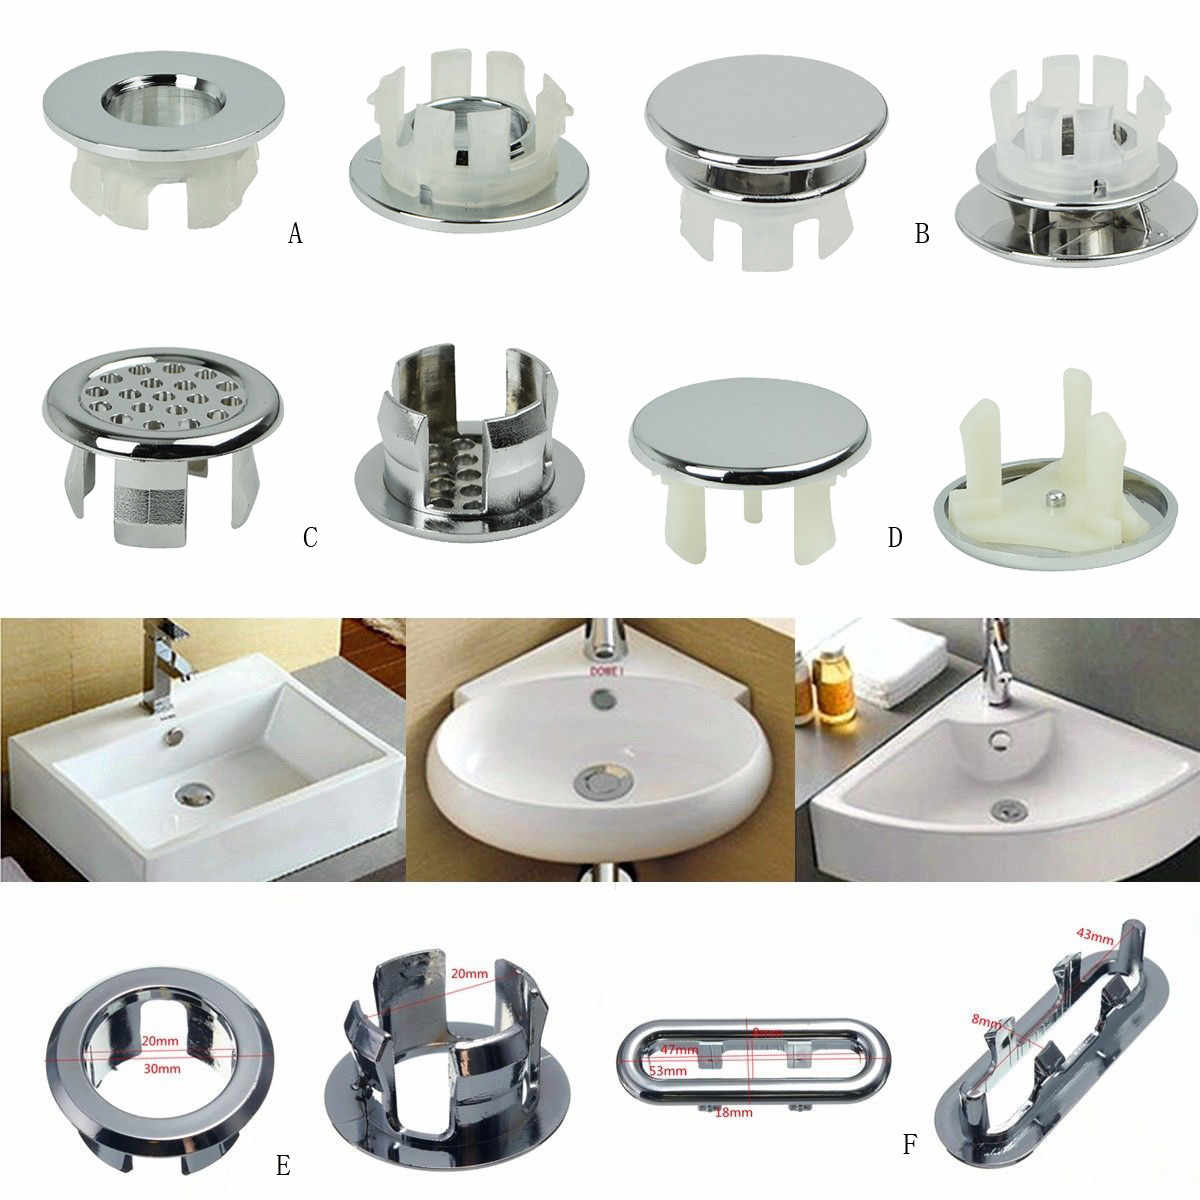 High Quality 1 Pc Sink Round Ring Overflow Spare Cover Tidy Chrome Trim Bathroom Ceramic Basin Overflow Ring G529